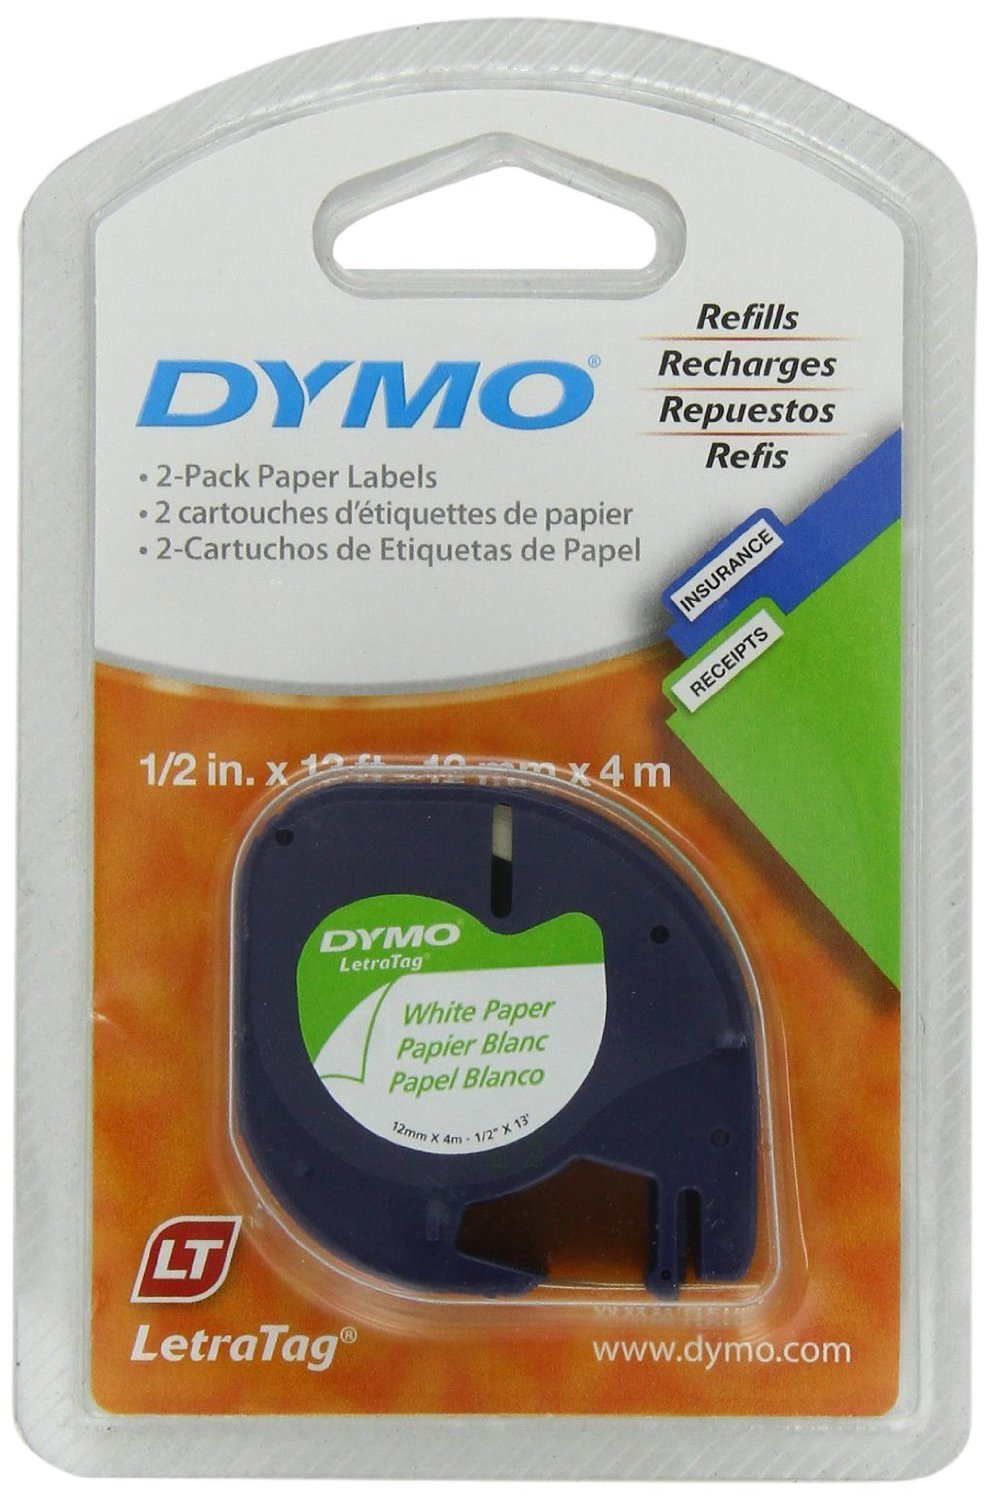 DYMO 10697 Self-Adhesive Paper Tape for LetraTag Label Makers, 1/2-inch, White, 13-foot Roll, 8-Pack